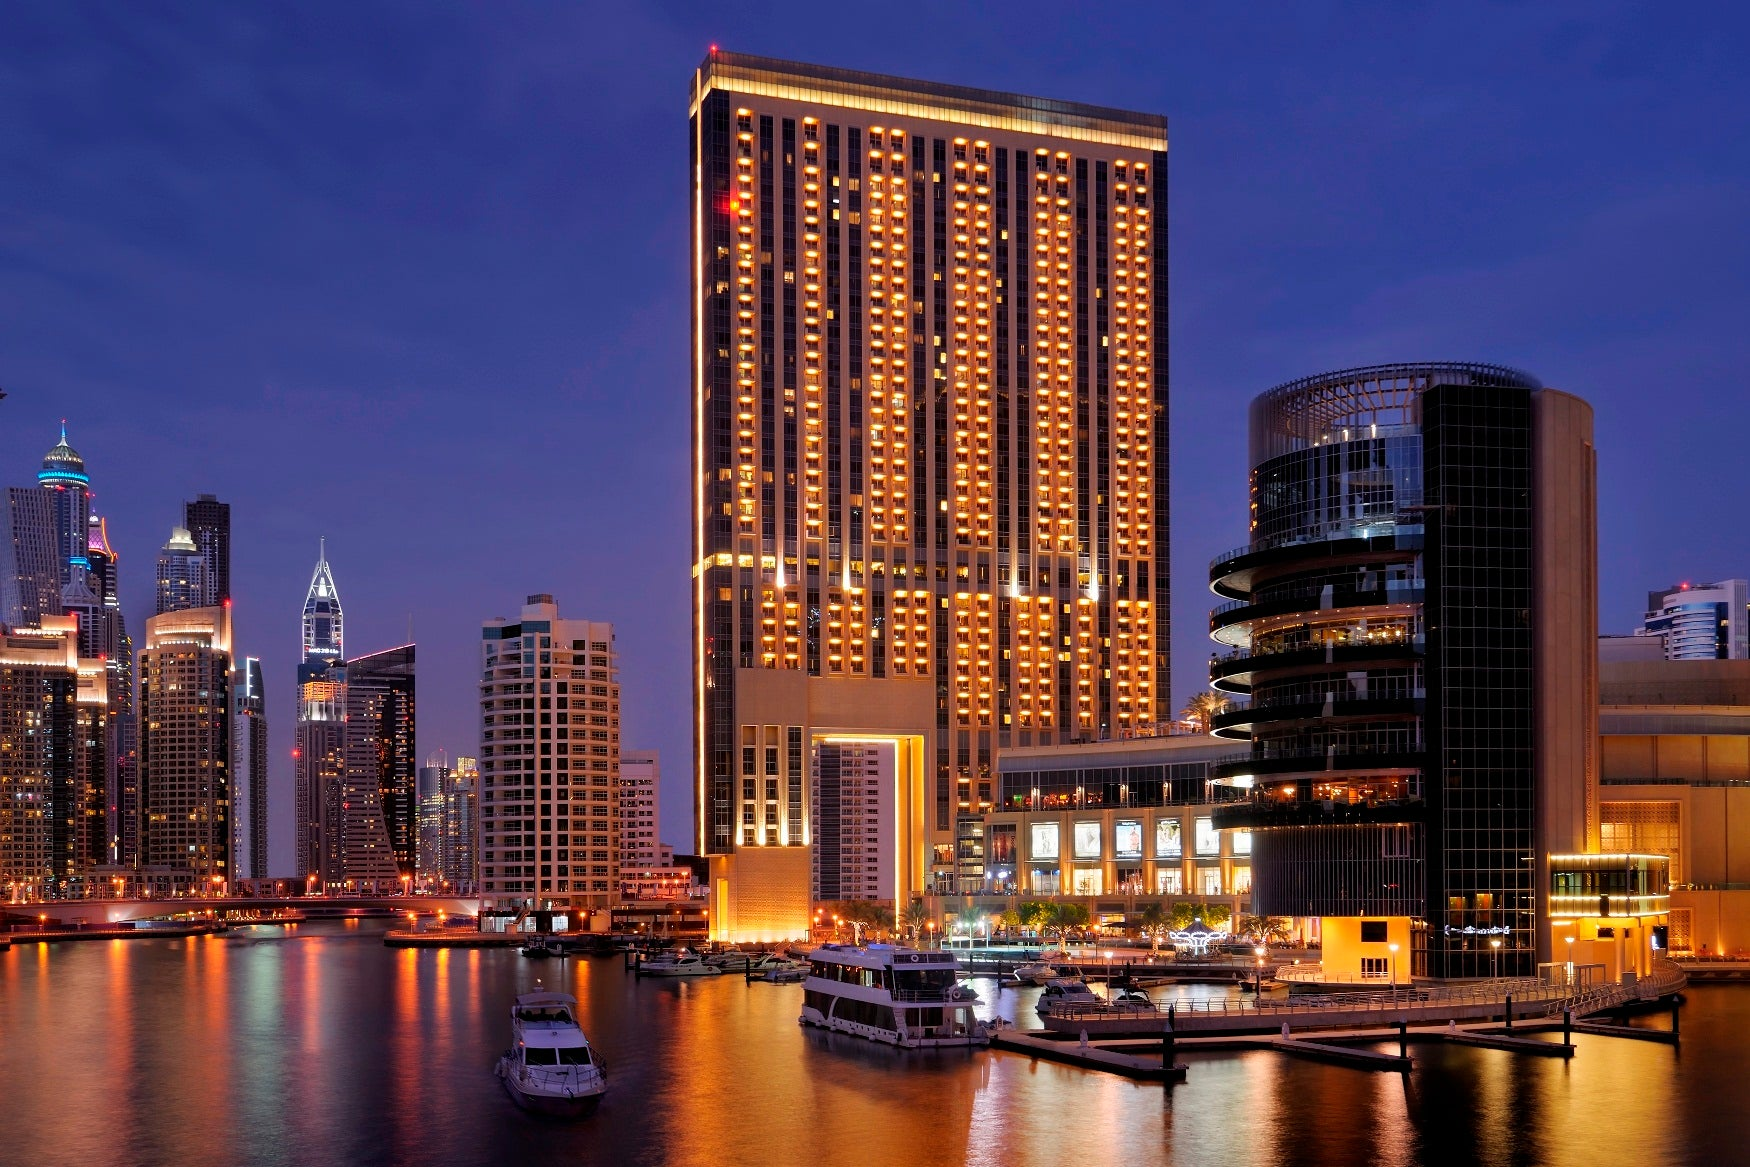 9 most luxurious hotels in dubai luxury section for The most luxurious hotel in dubai